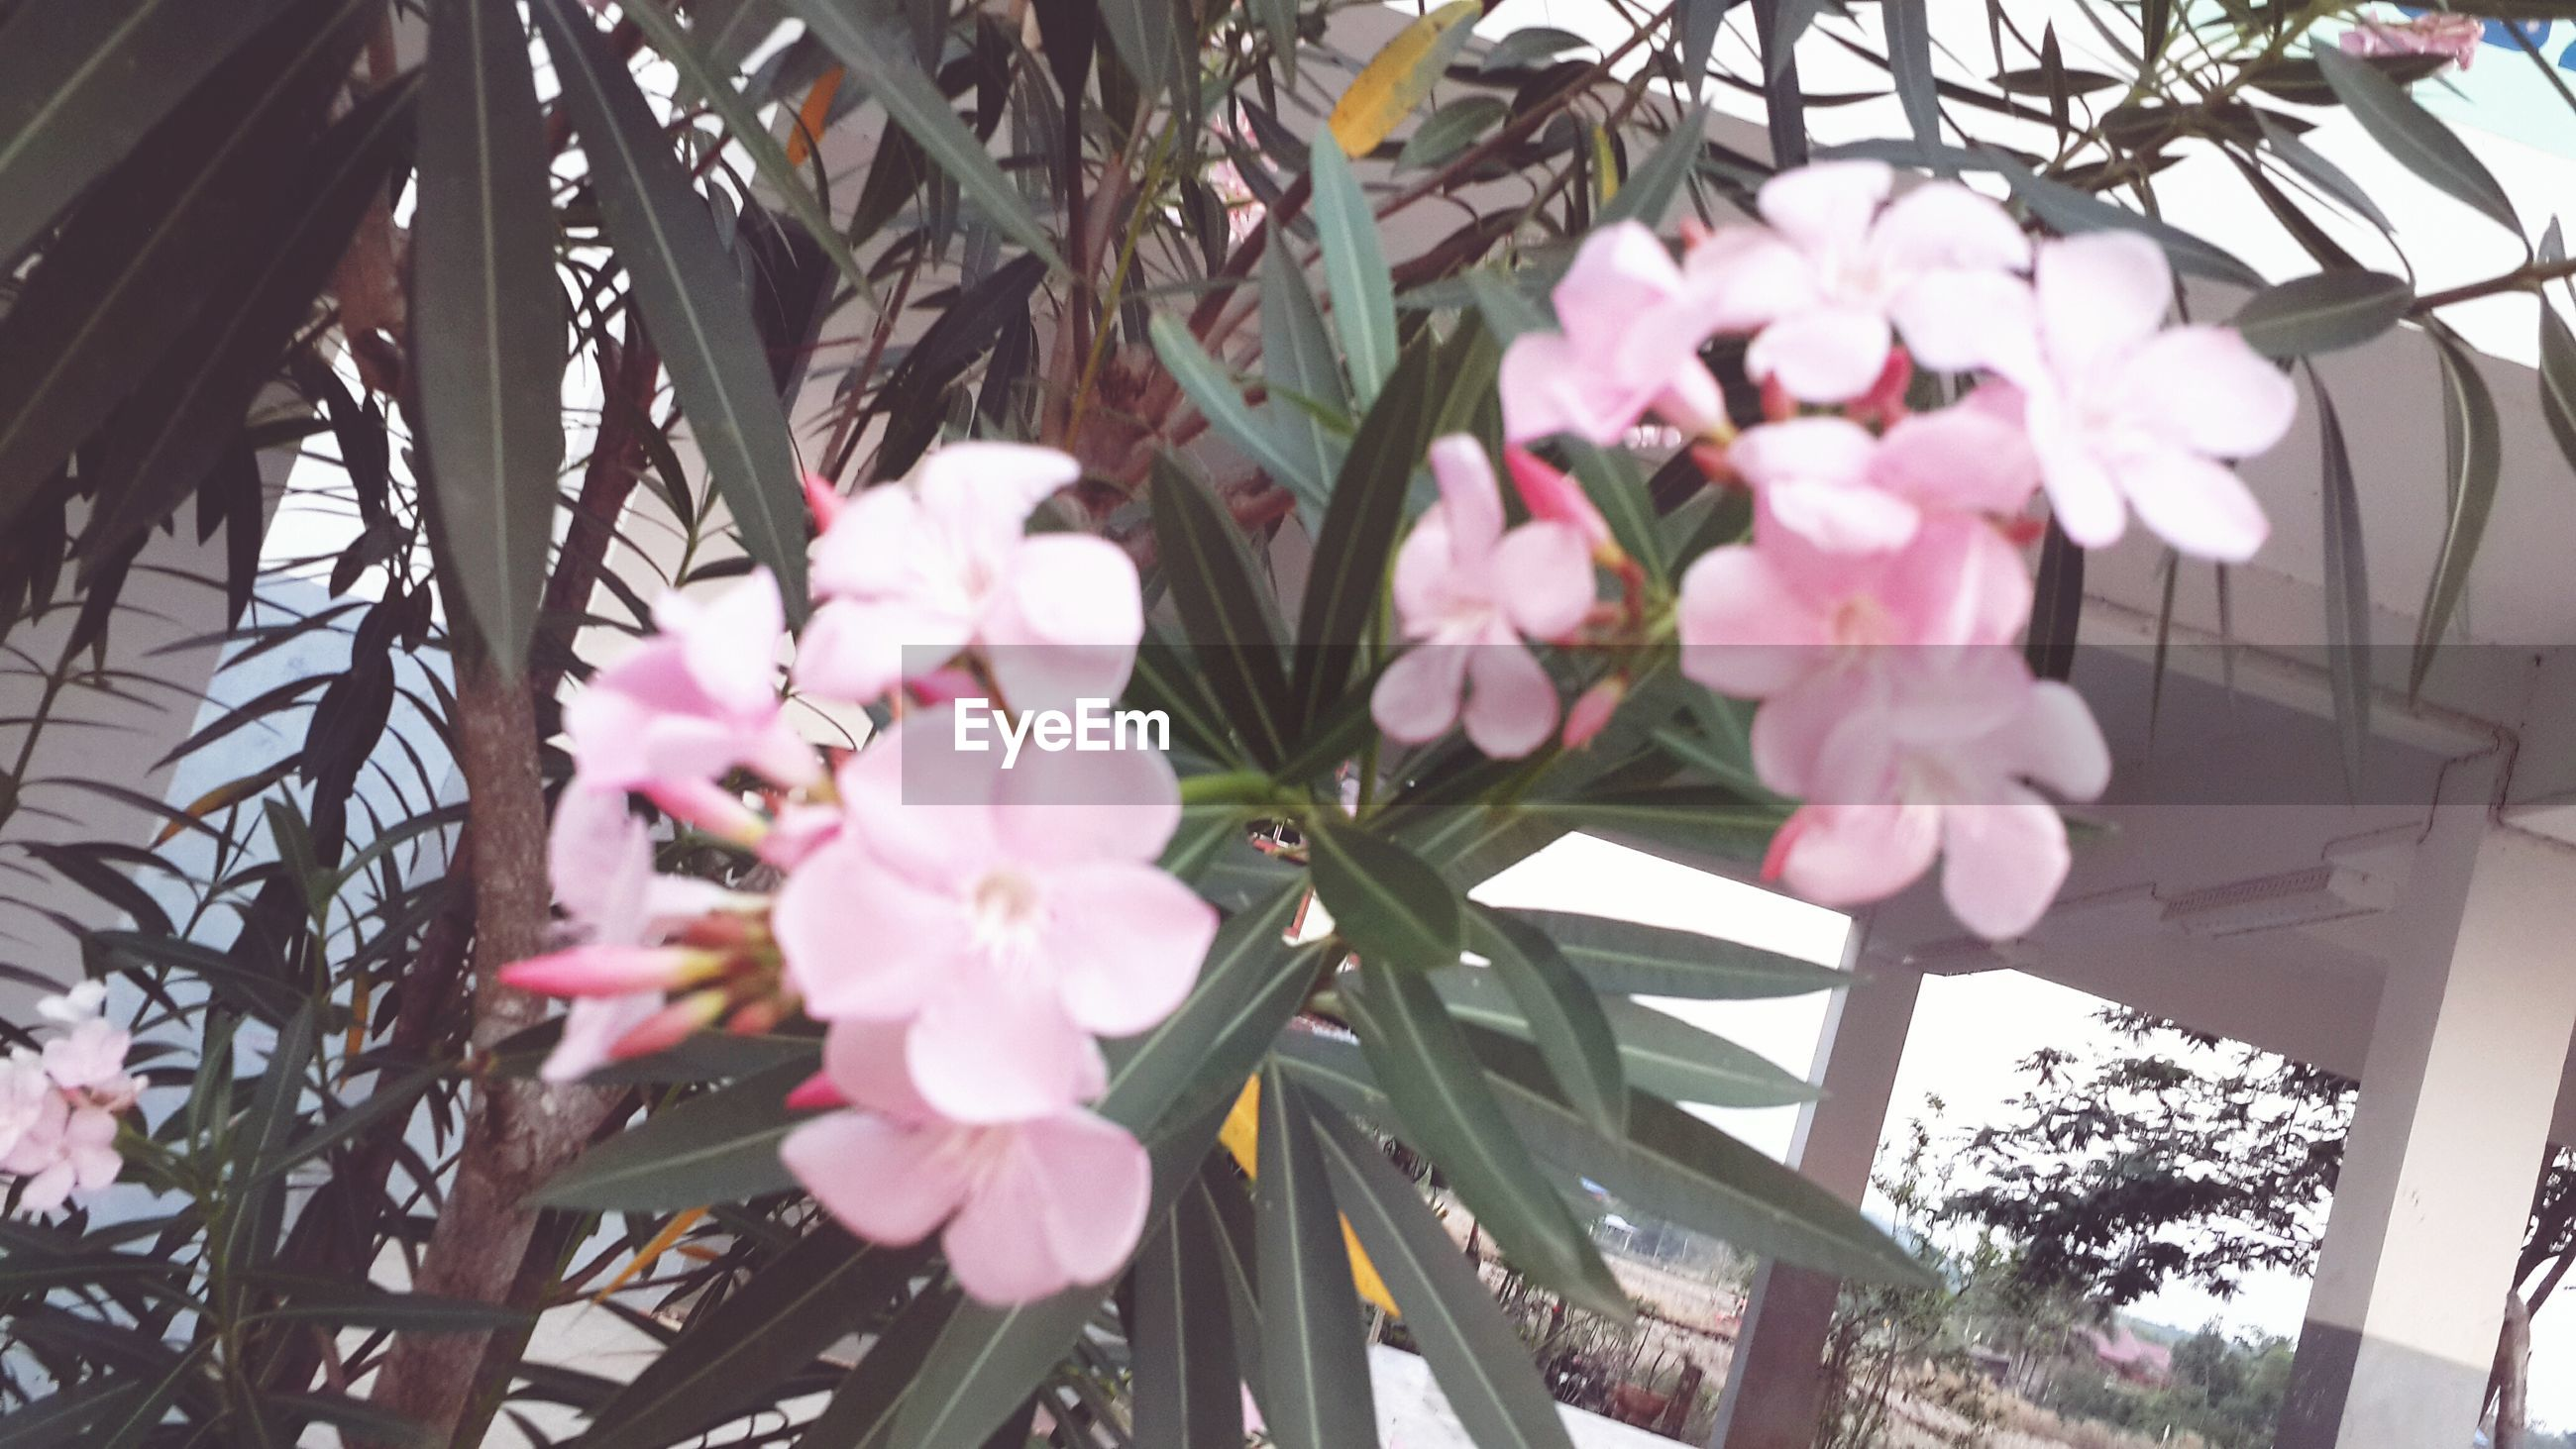 flower, freshness, fragility, growth, petal, pink color, beauty in nature, nature, blooming, flower head, blossom, in bloom, branch, close-up, tree, low angle view, plant, day, springtime, no people